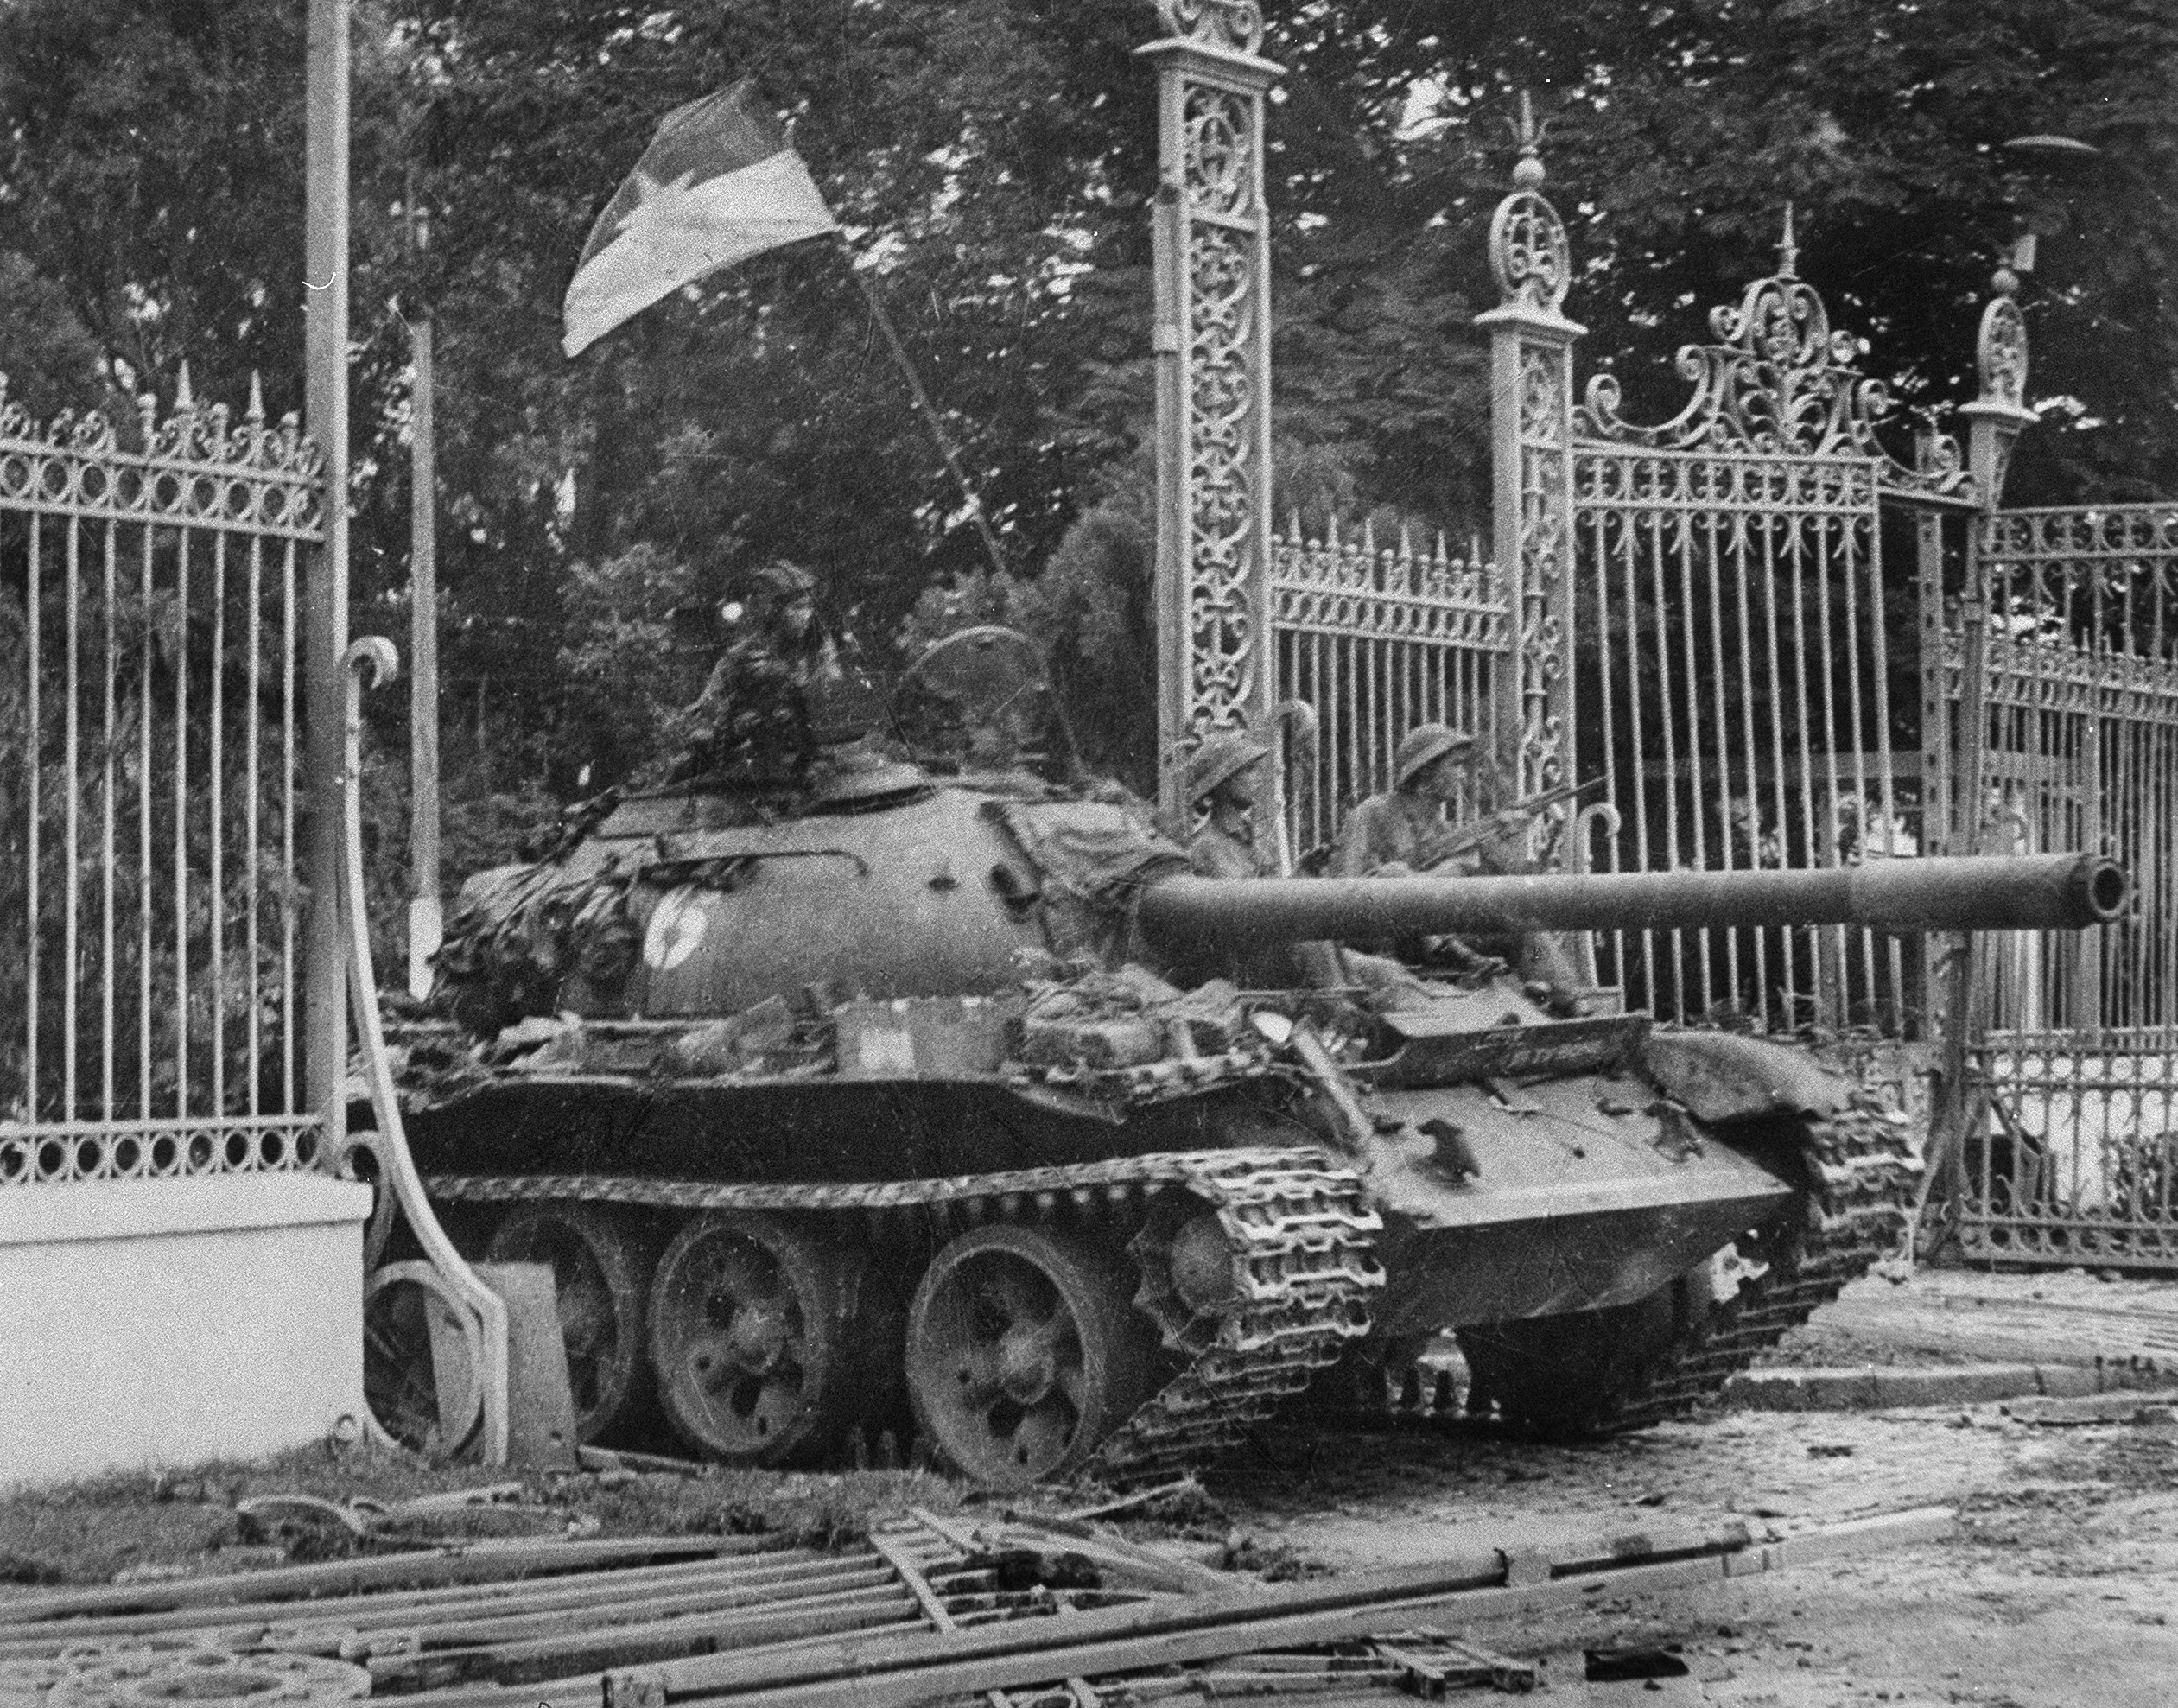 A picture taken on April 30, 1975 in Saigon shows a tank of the North Vietnamese Army (NVA) smashing in the gate of the South Vietnamese presidential palace, South Vietnamese government's last stronghold. (BW only). AFP / VNA (Photo by - / VNA / AFP) (Photo by -/VNA/AFP via Getty Images)